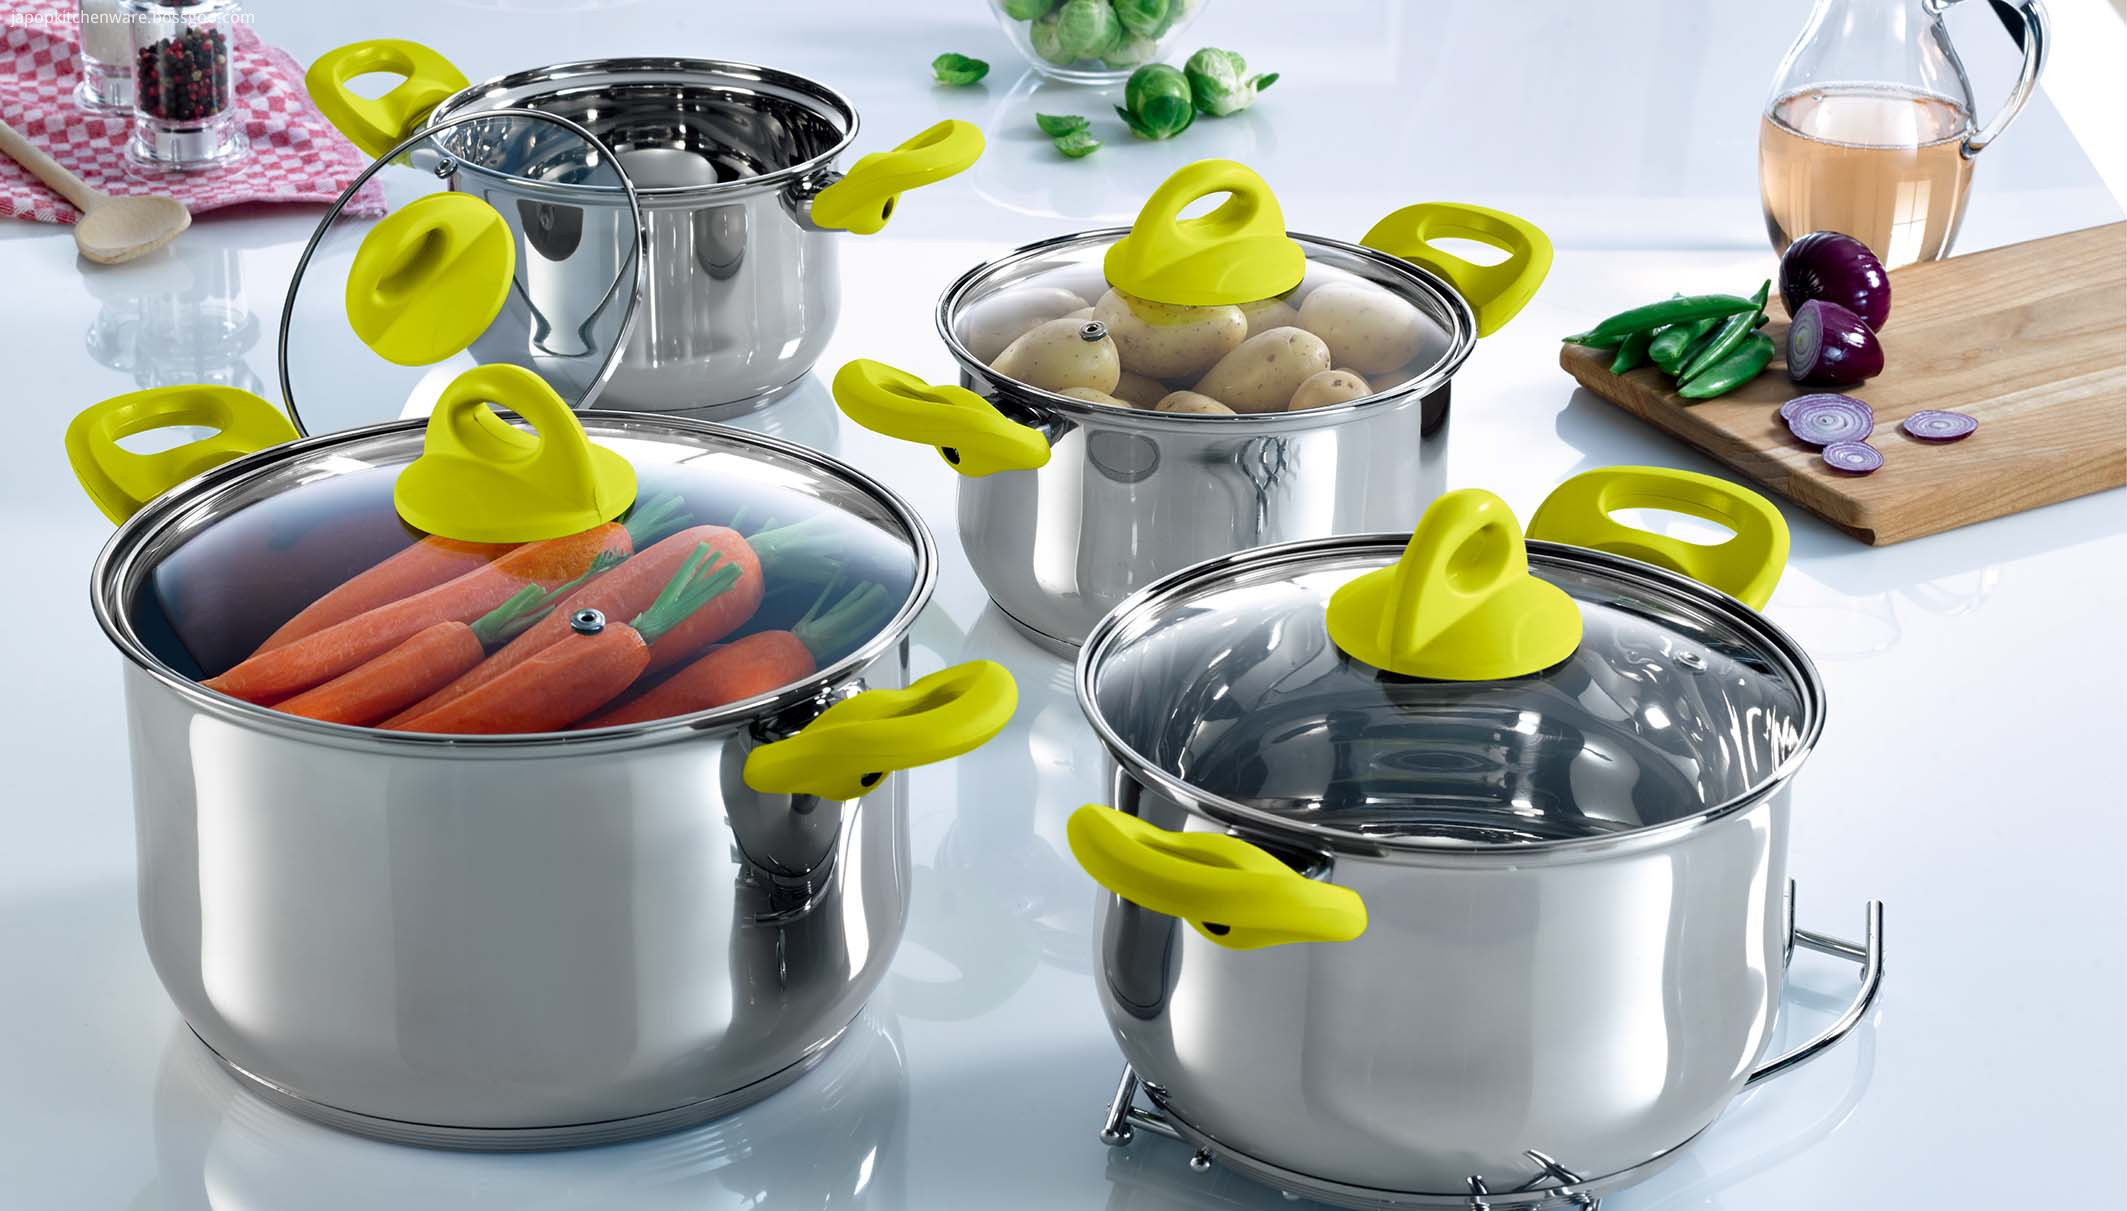 Saucepot 8pcs cookware set